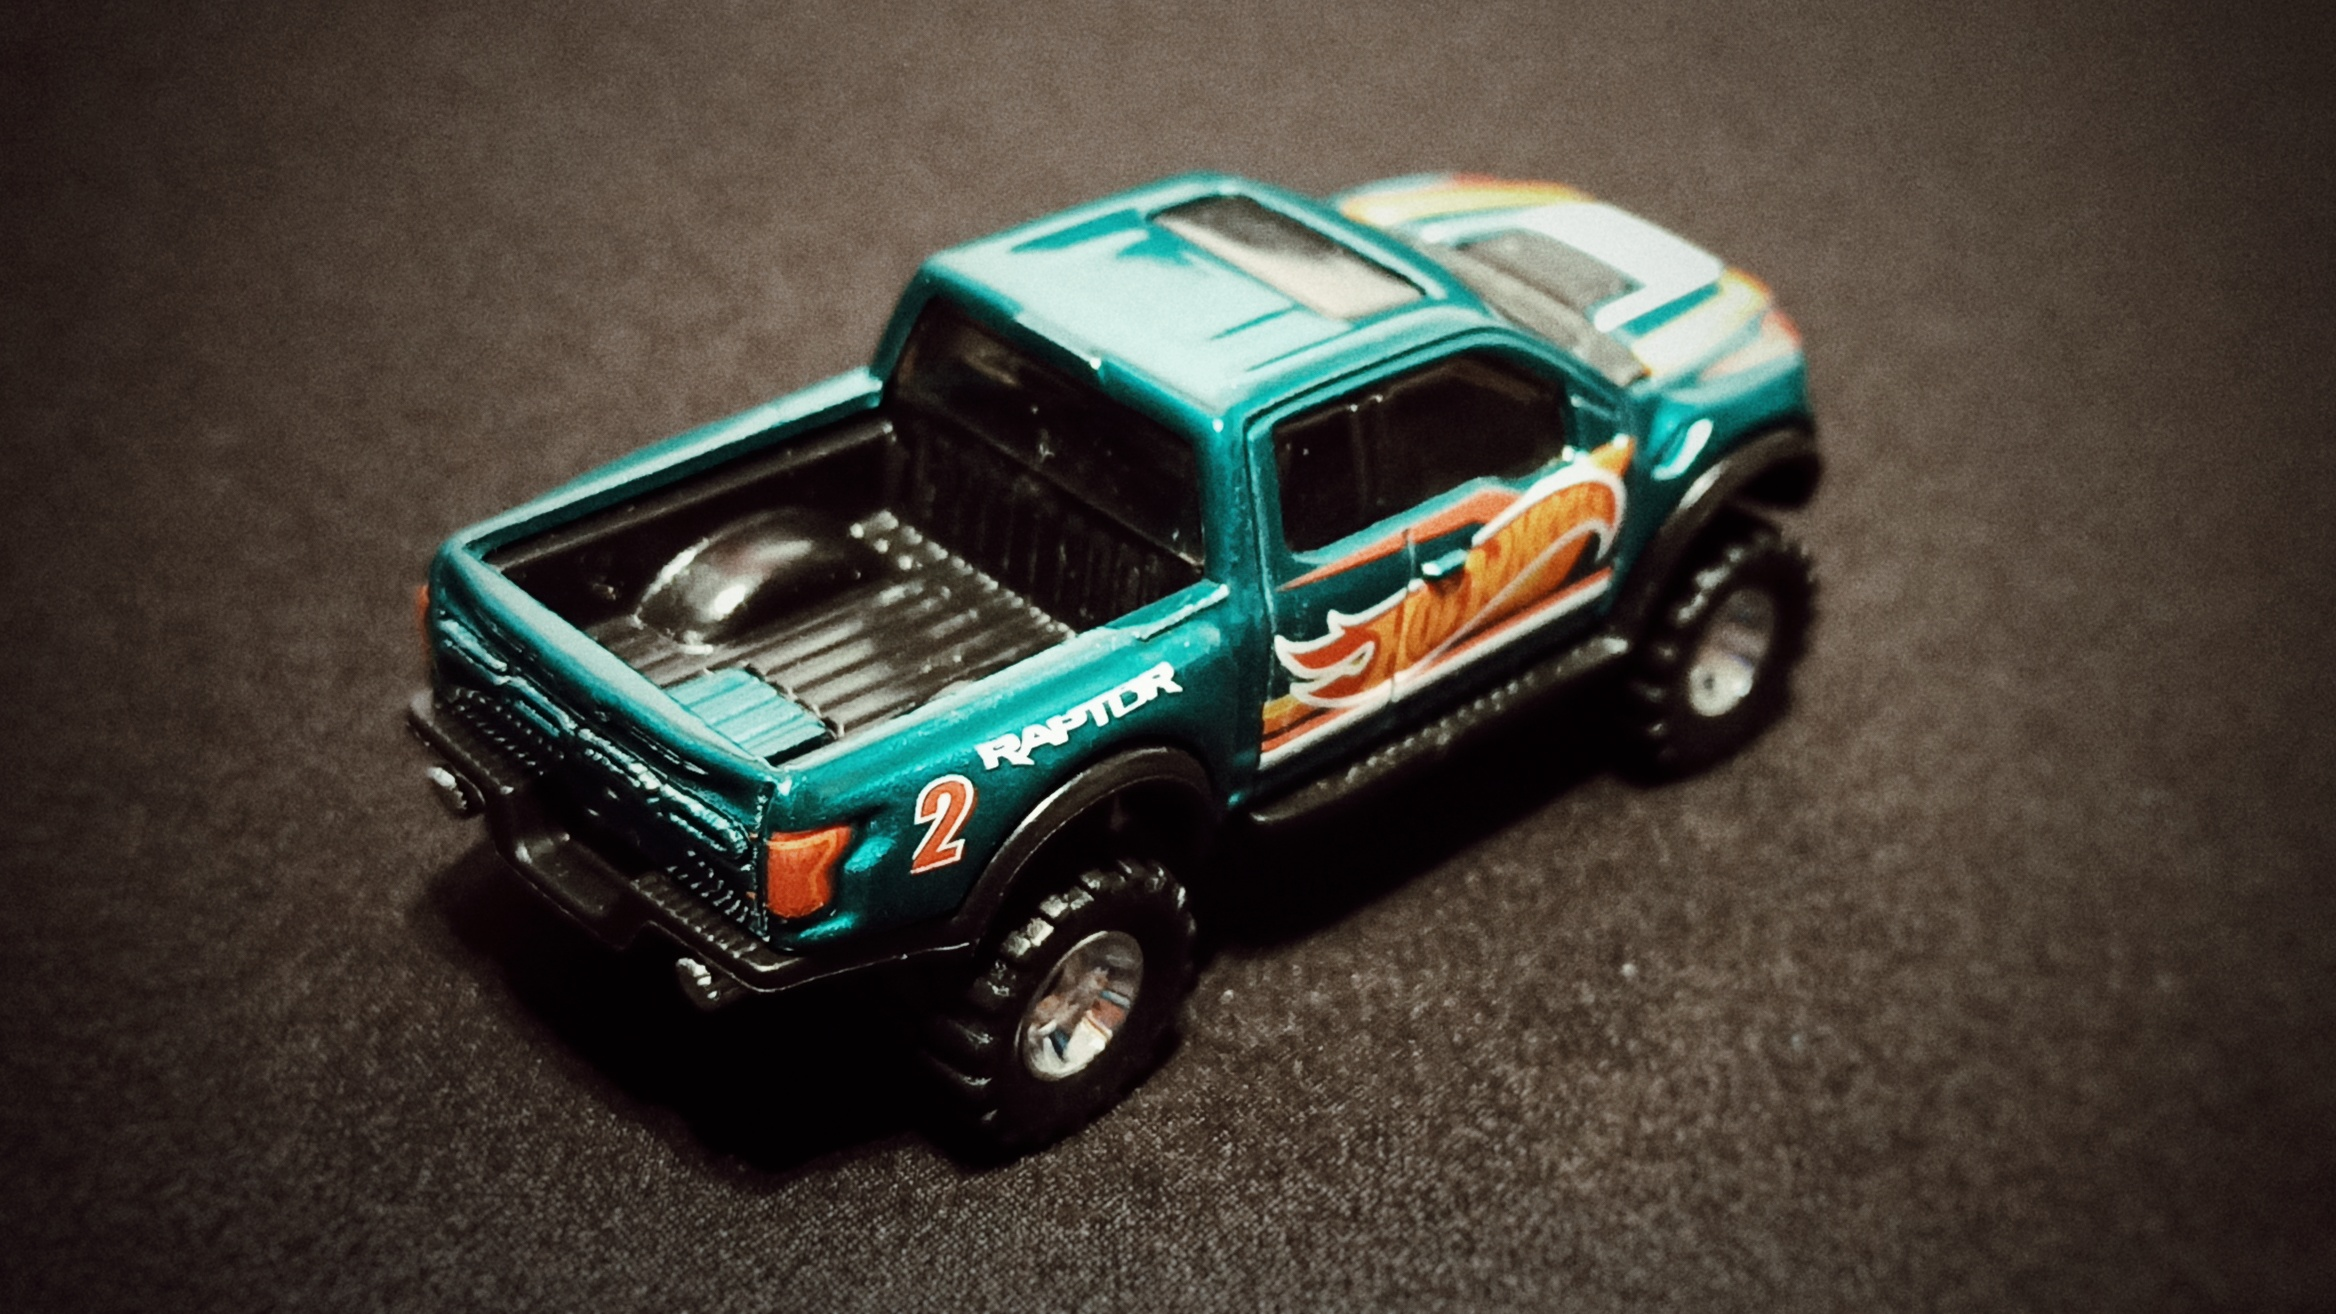 Hot Wheels '17 Ford F-150 Raptor (GTD72) 2021 Collector Edition (Dollar General Mail-in) spectraflame aqua green top angle